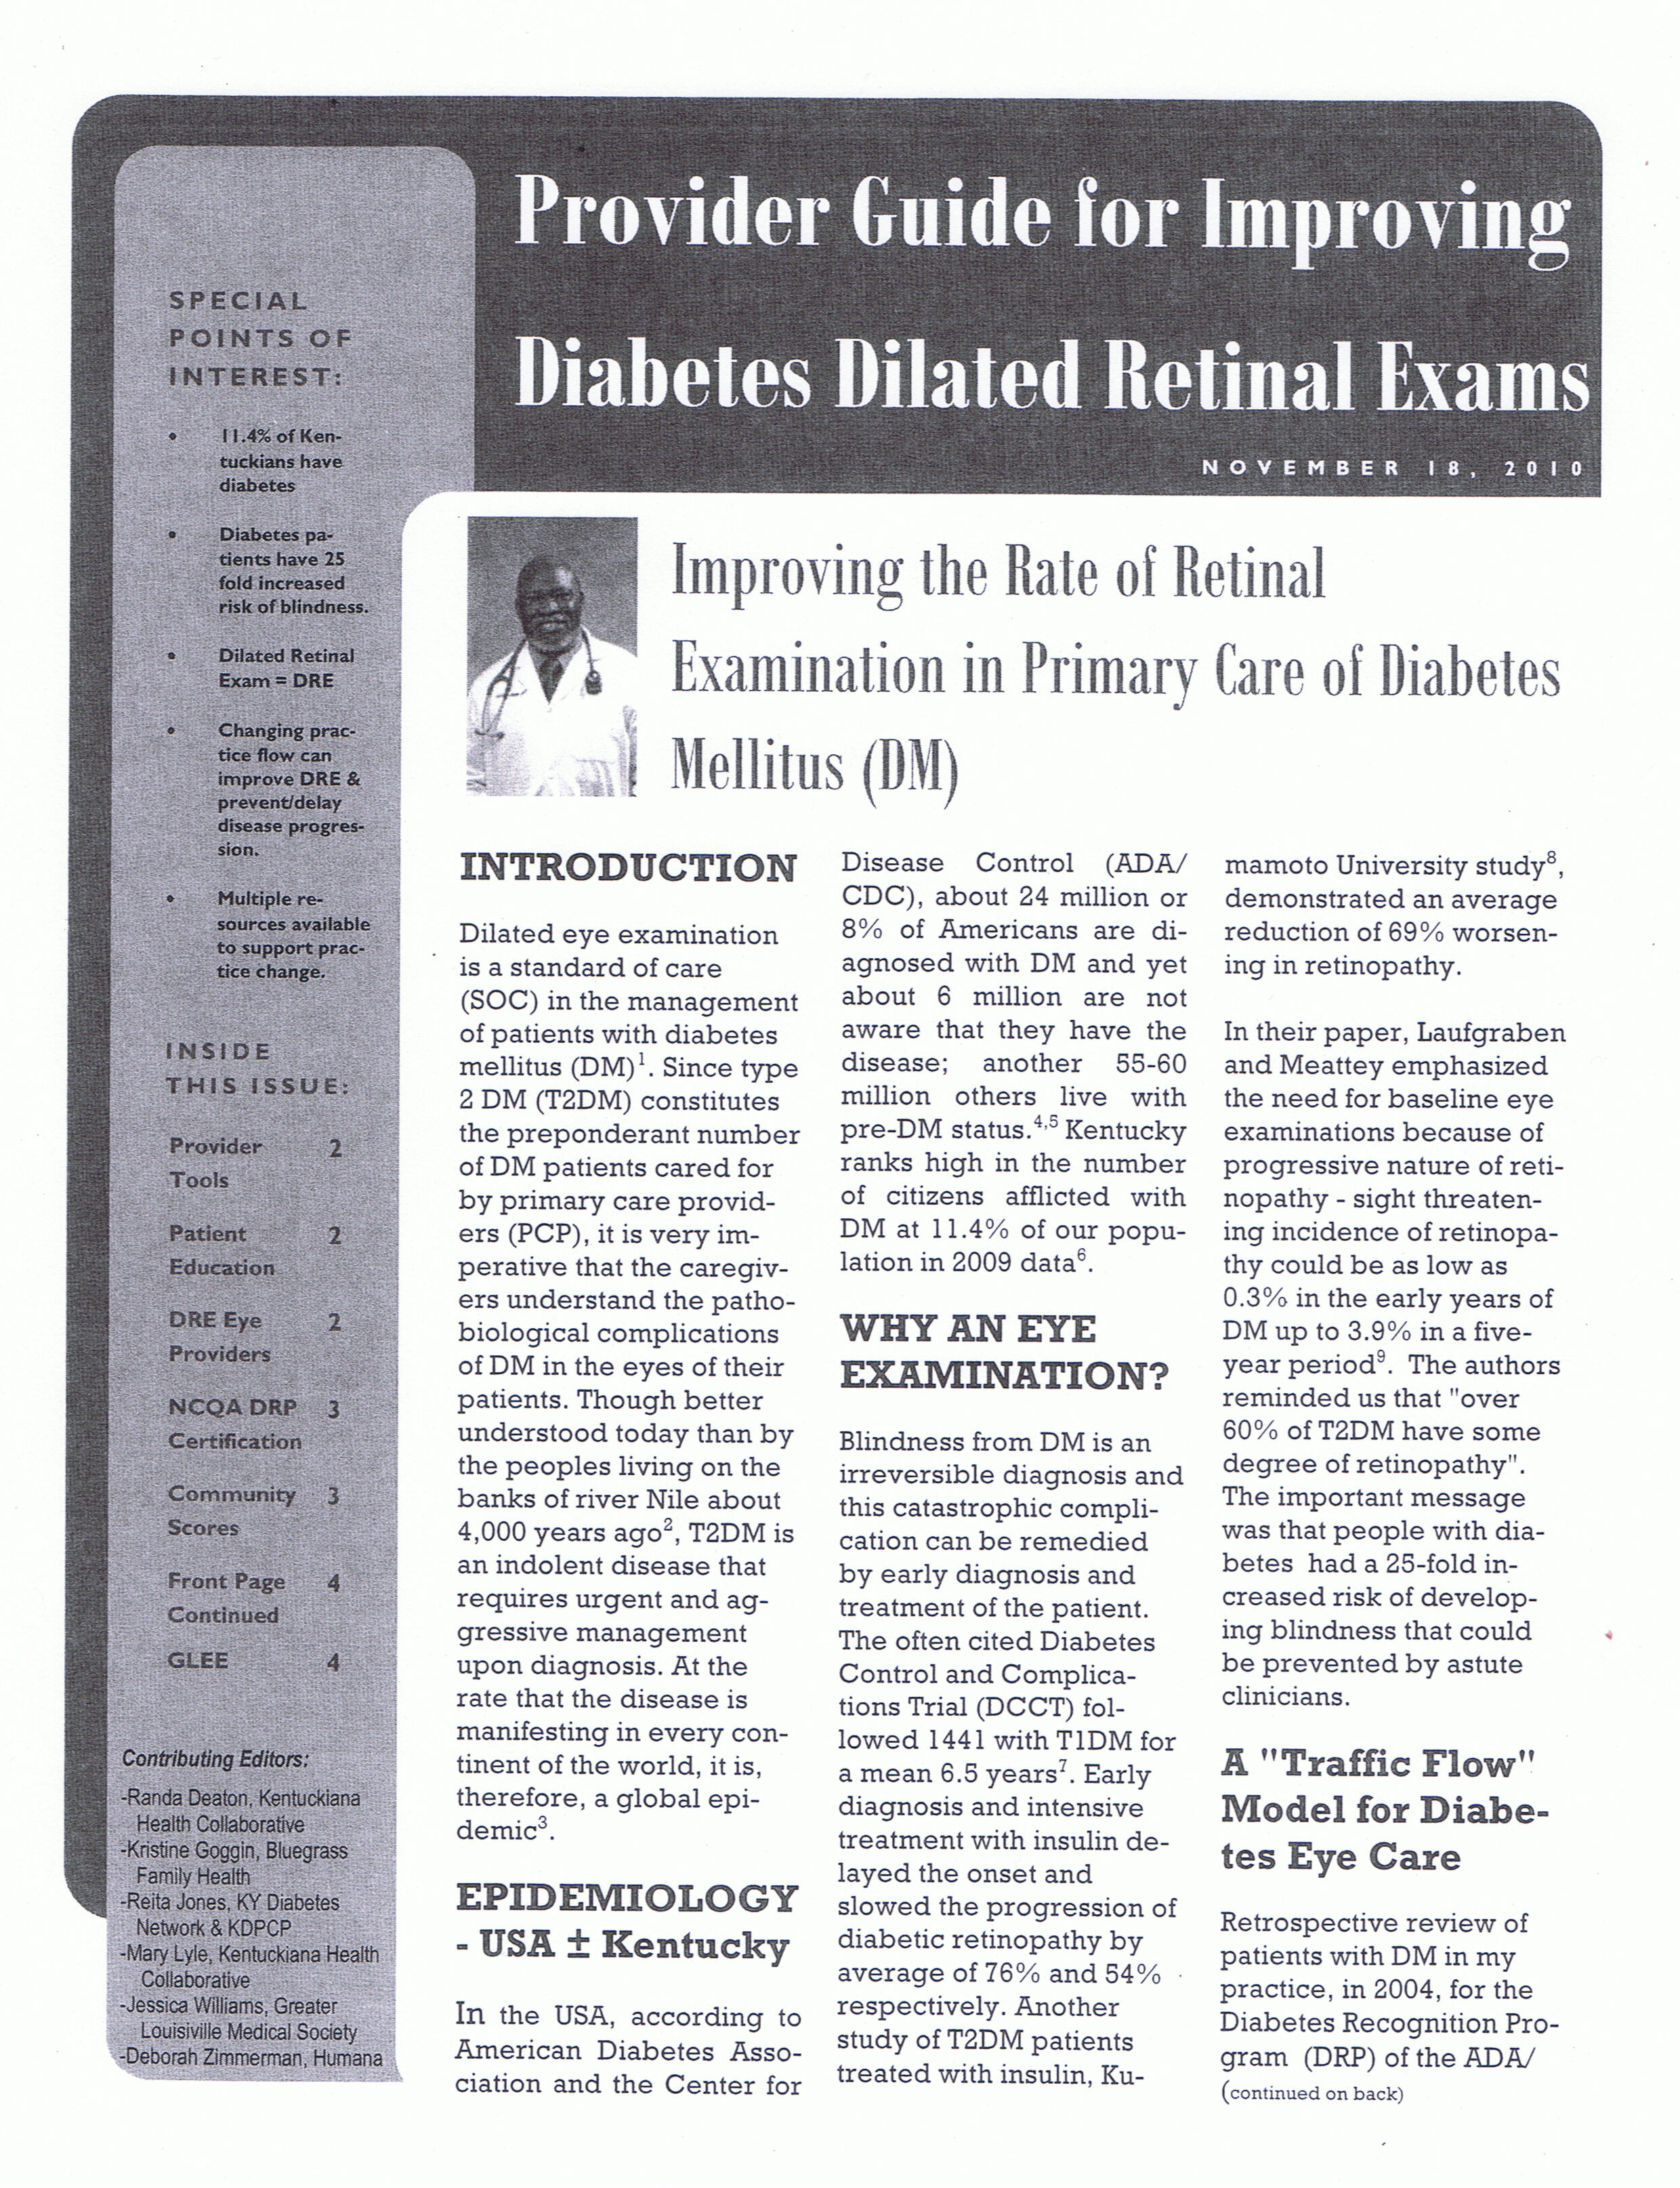 Kdn tools and materials this guide includes a primary care office flow redesign model to help improve the number of patients with diabetes who receive dilated retinal exams publicscrutiny Choice Image